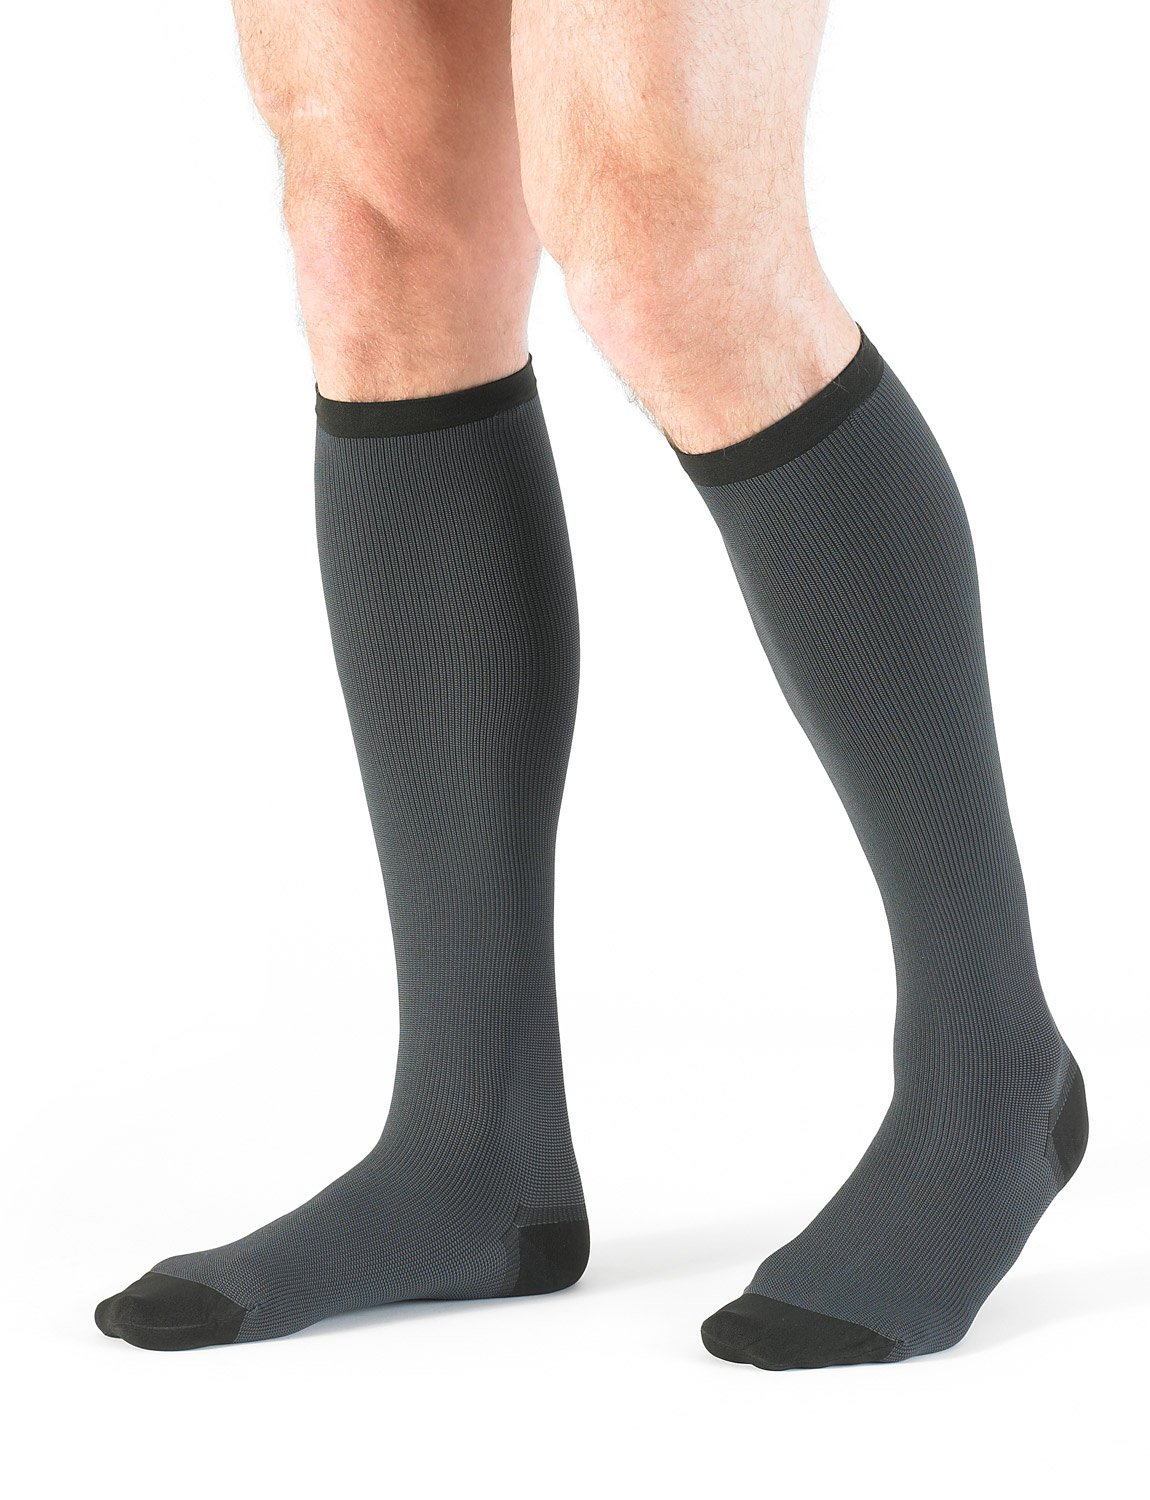 NEO G Men's Compression Socks - XX-LARGE - Grey - Medical Grade Quality, True Graduated Compression HELP aid circulation, reduce symptoms of tired, aching legs, mild oedema (edema) & swelling by Neo-G